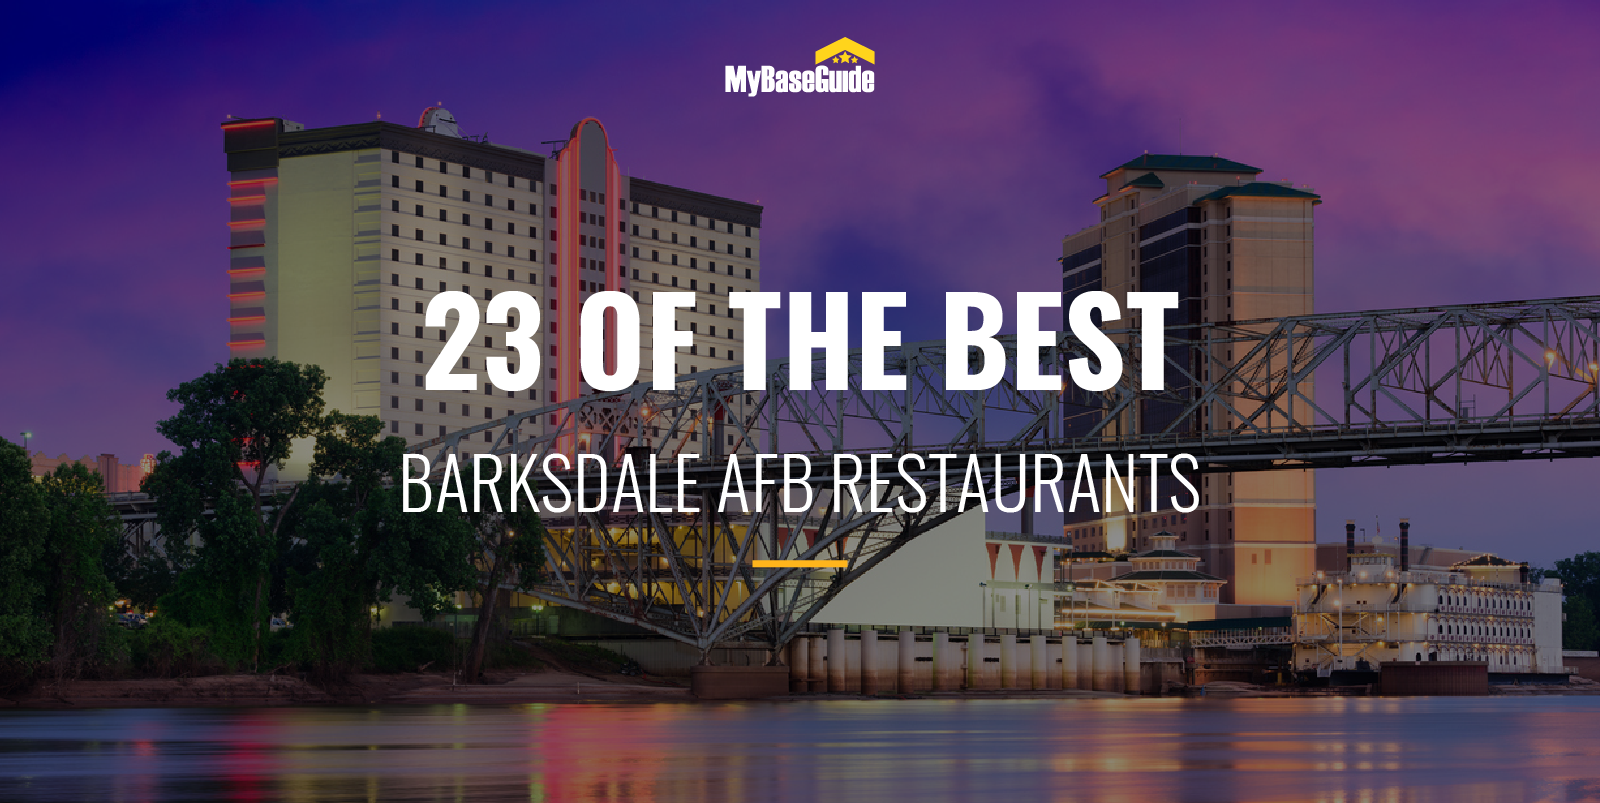 23 of the Best Barksdale AFB Restaurants